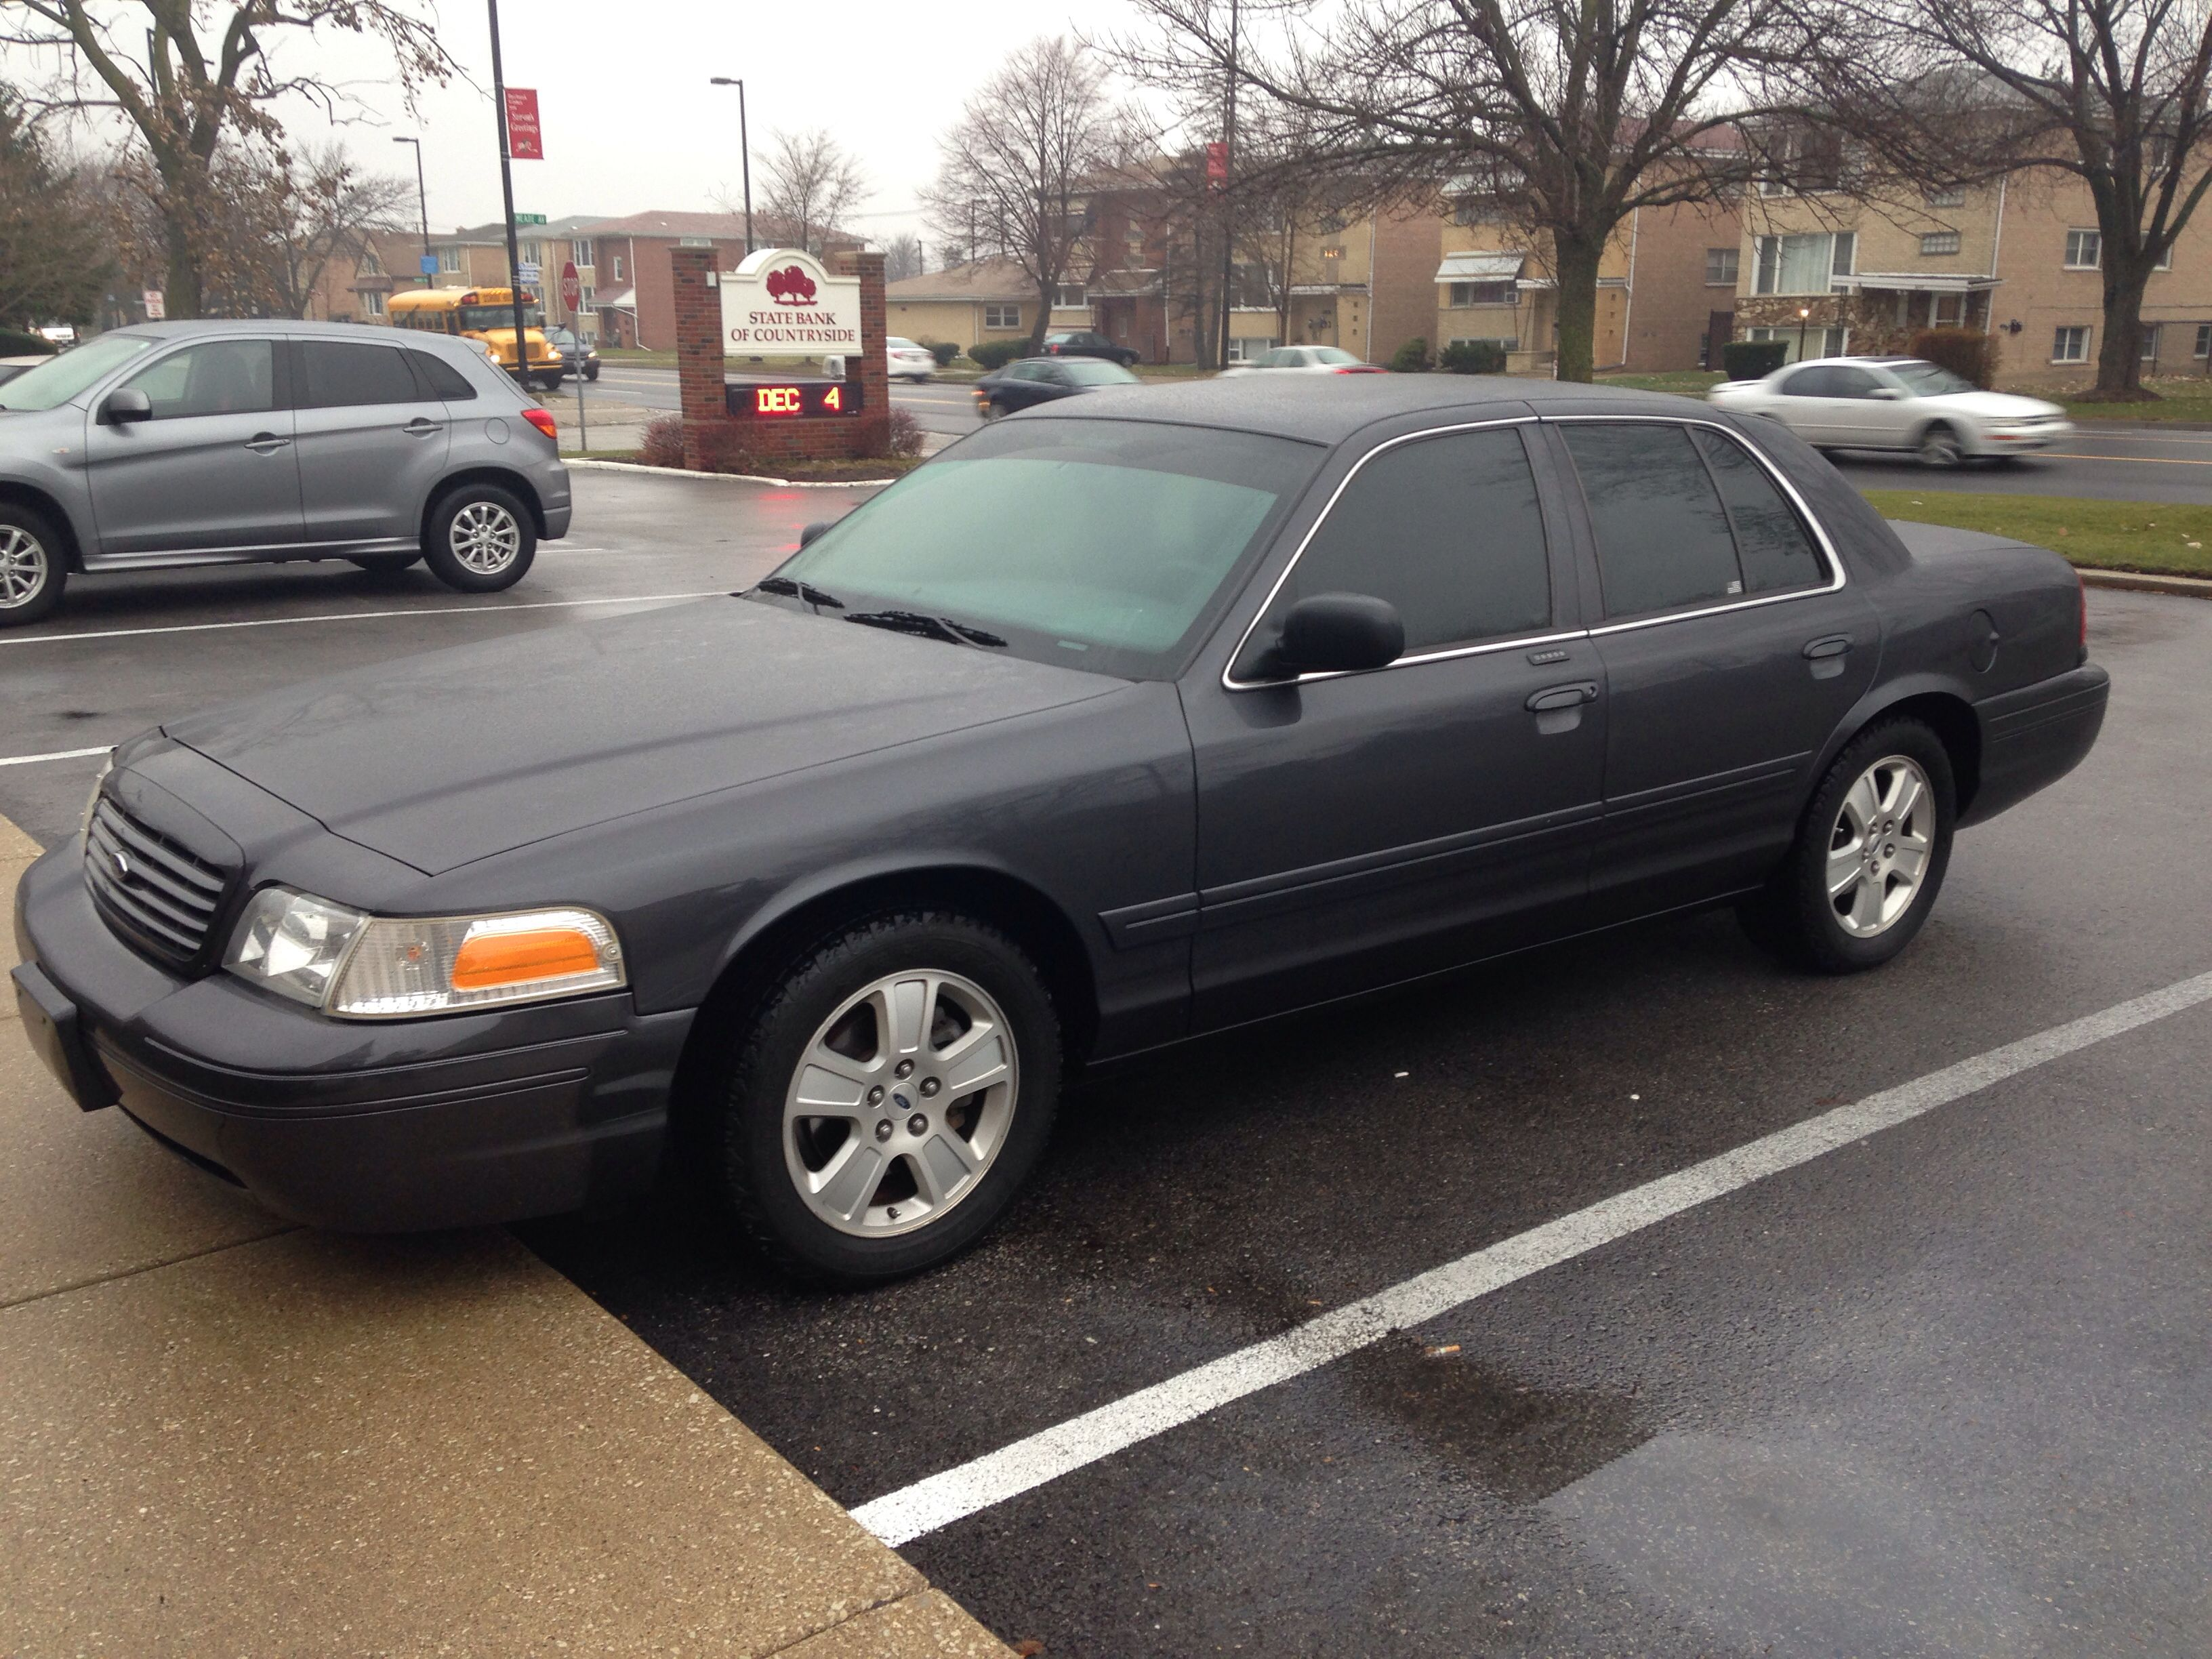 Used ford crown victoria p71 for sale for only 2995 cheap and affordable cheap cars for sale pinterest crown ford and cars